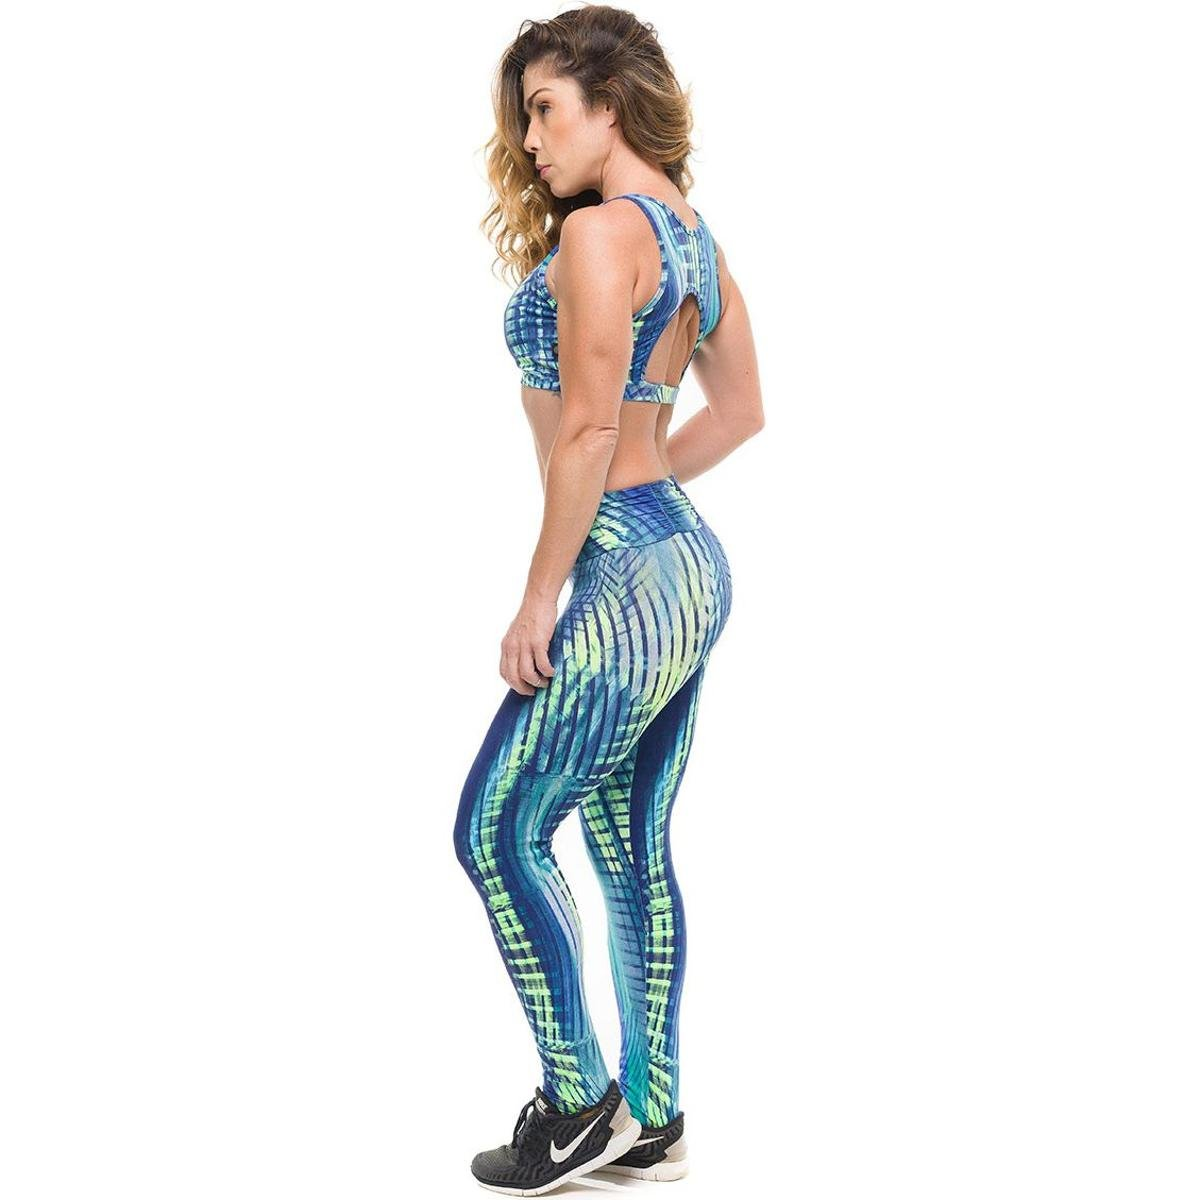 Com Fitness Proteção Top Sandy Feminino Legging Sky Authentic Conjunto Royal Solar Azul wZpgx